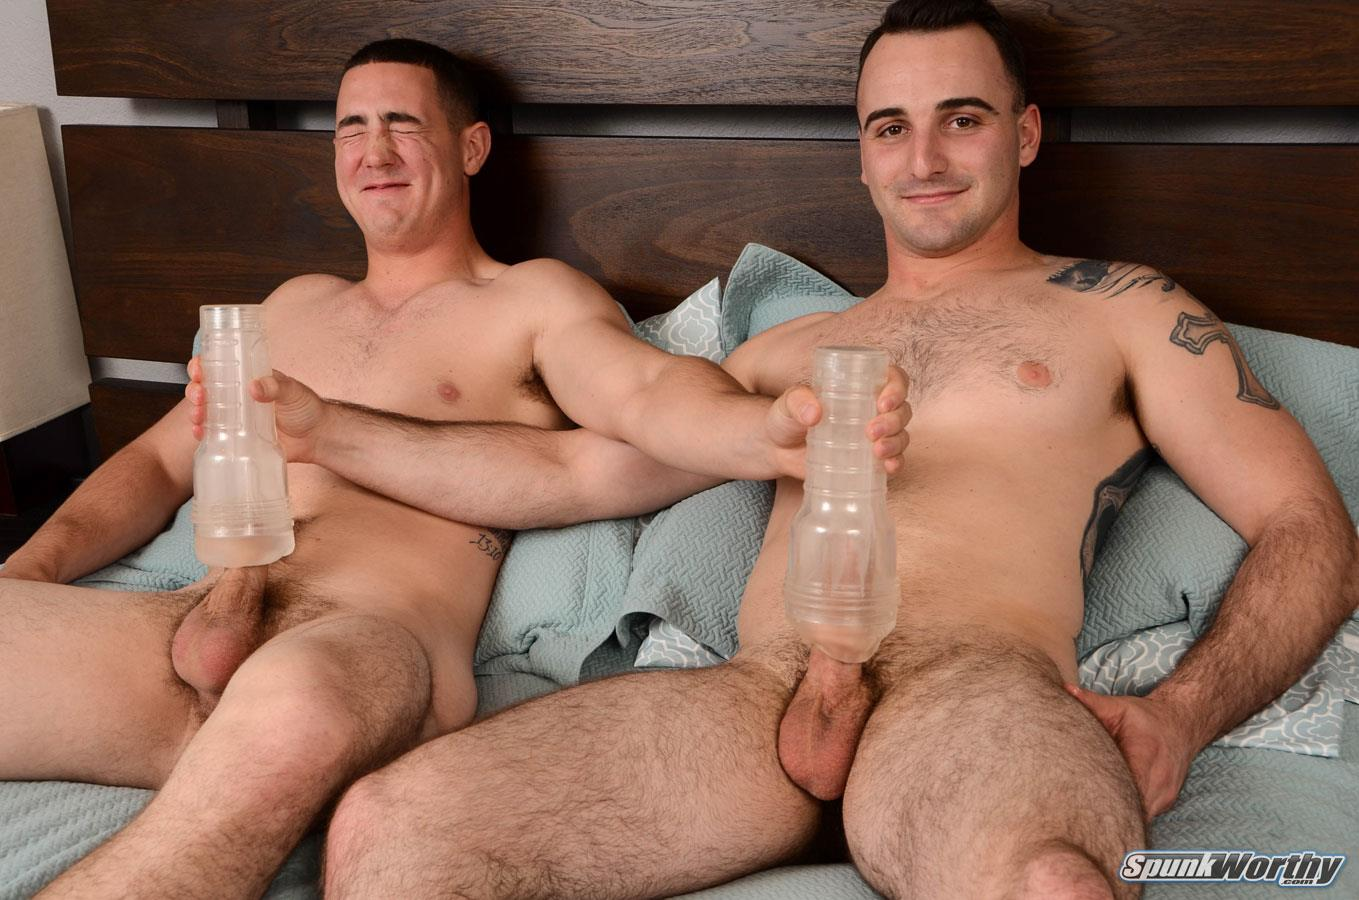 SpunkWorthy Damien and Tom Army Buddies Jerking Off Together Army Cock Amateur Gay Porn 15 Straight Army Boys Share Some Jerkoff Time Together